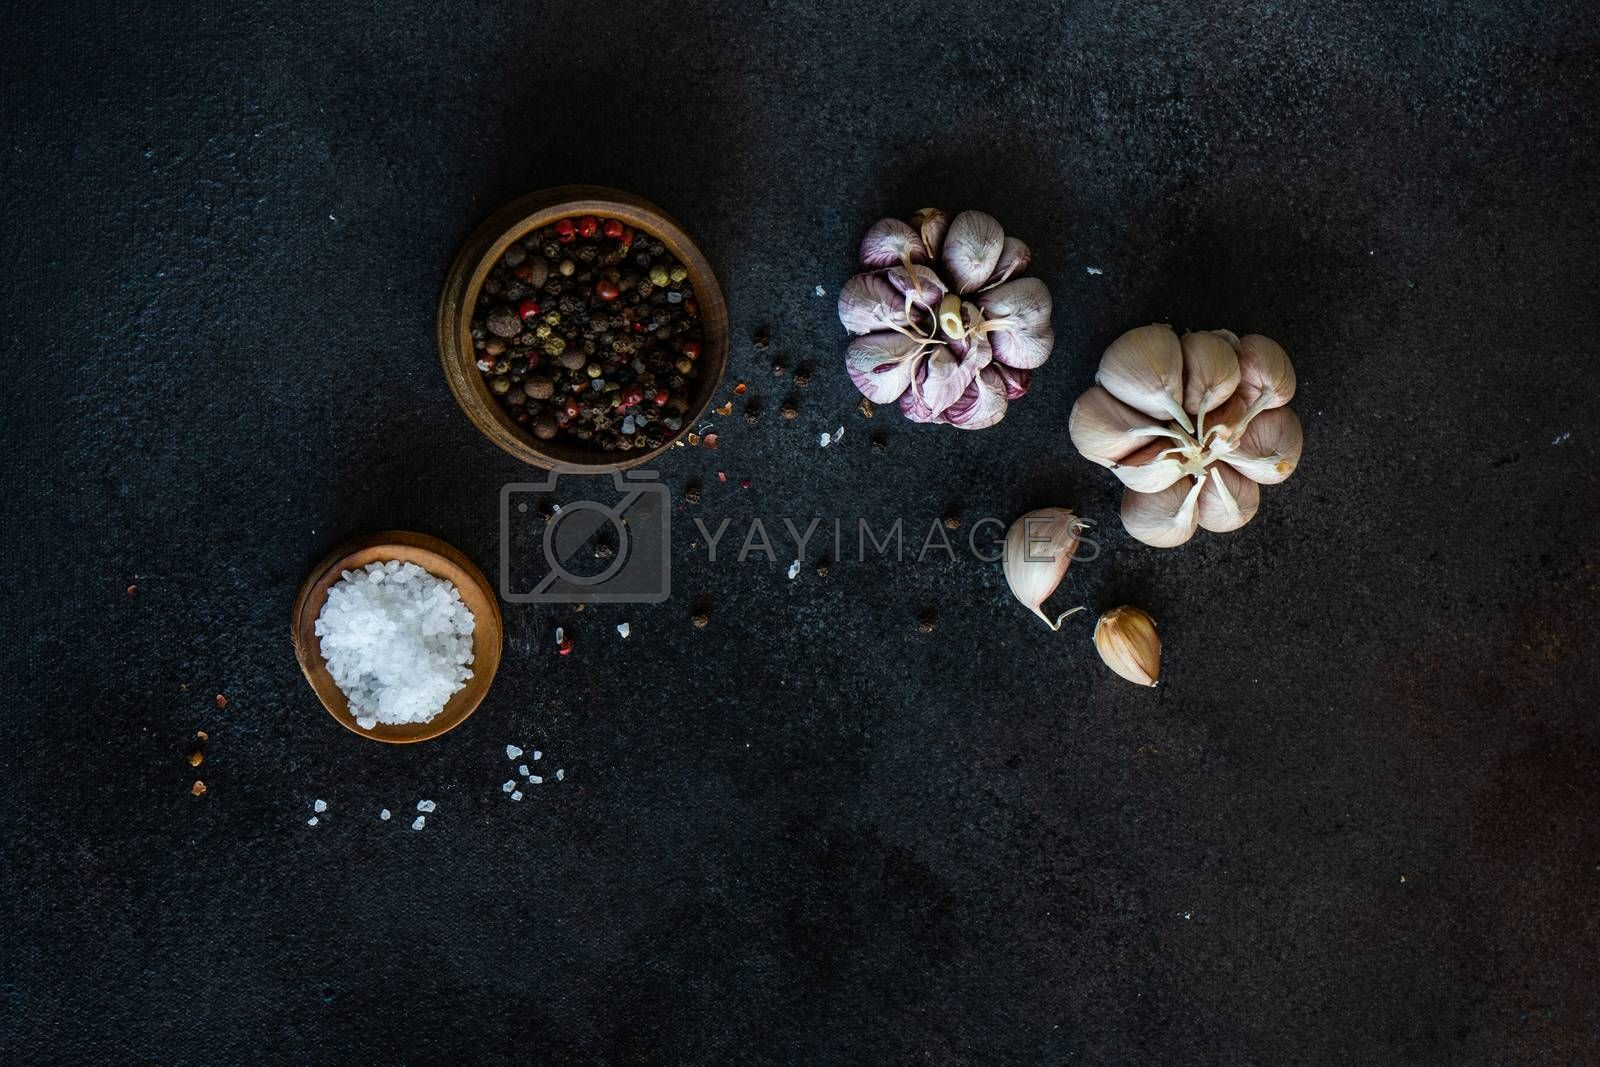 Spices concept by Elet